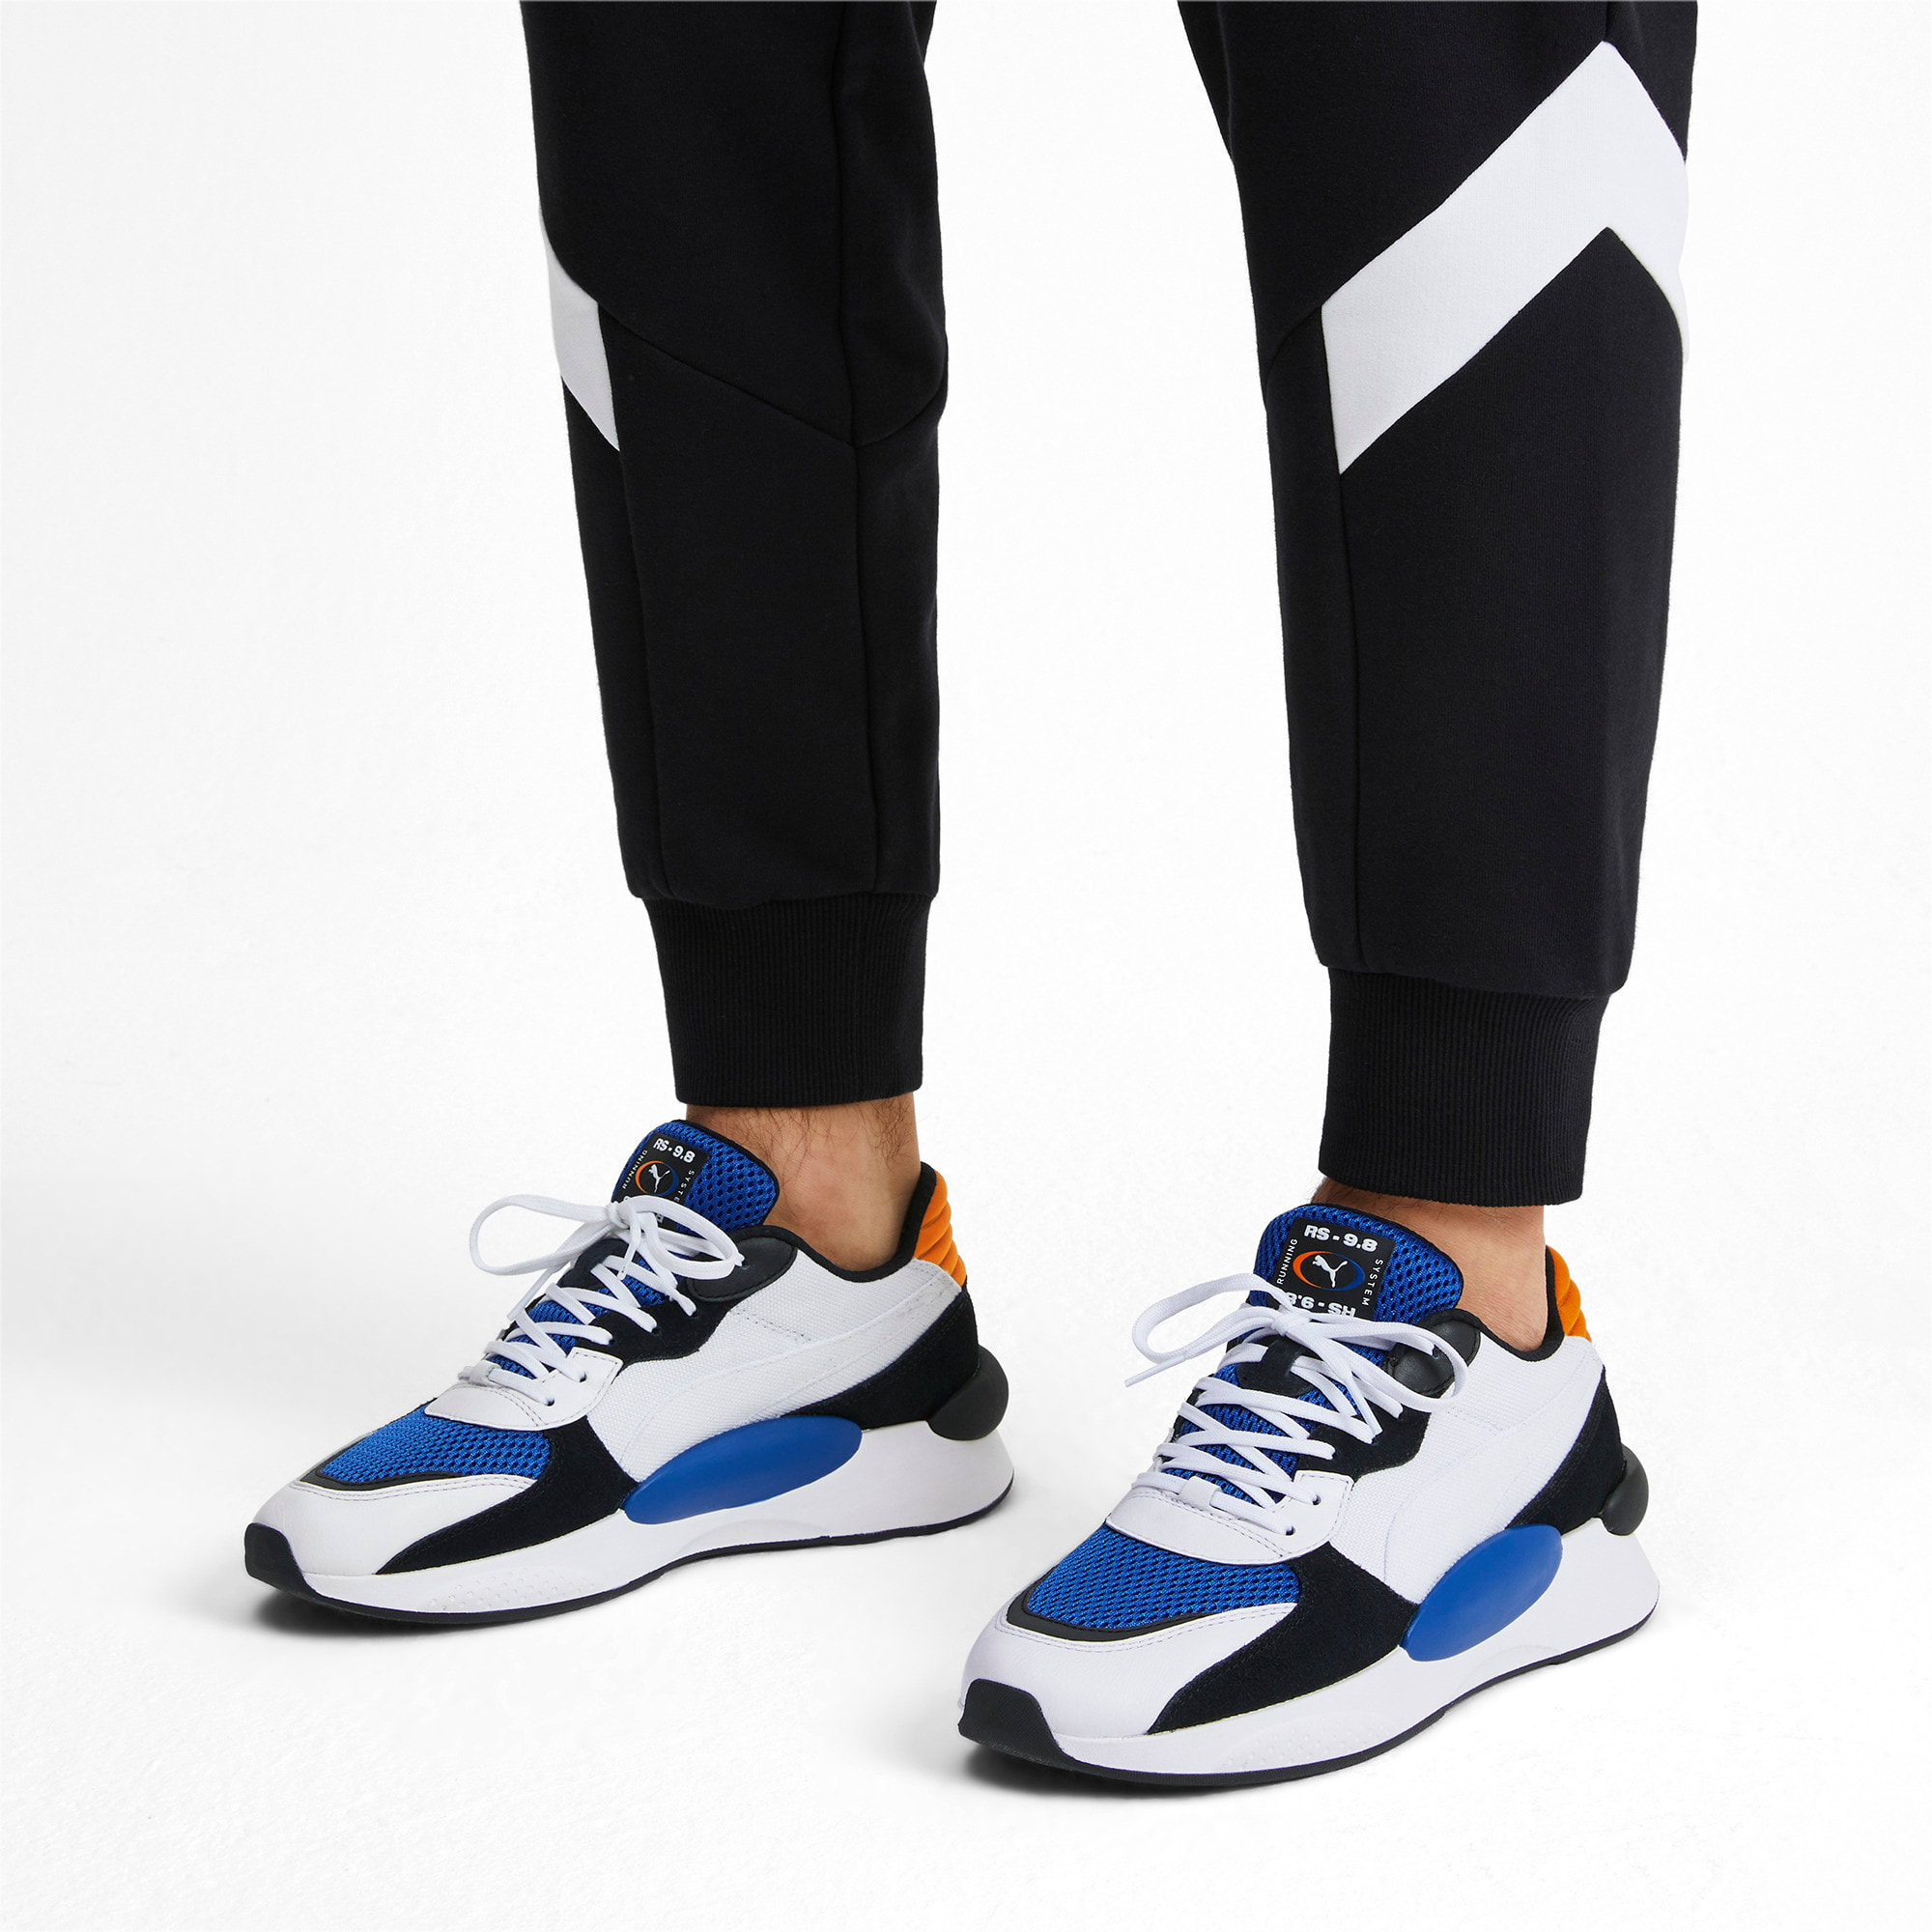 Thumbnail 2 of RS 9.8 Cosmic Trainers, Puma White-Galaxy Blue, medium